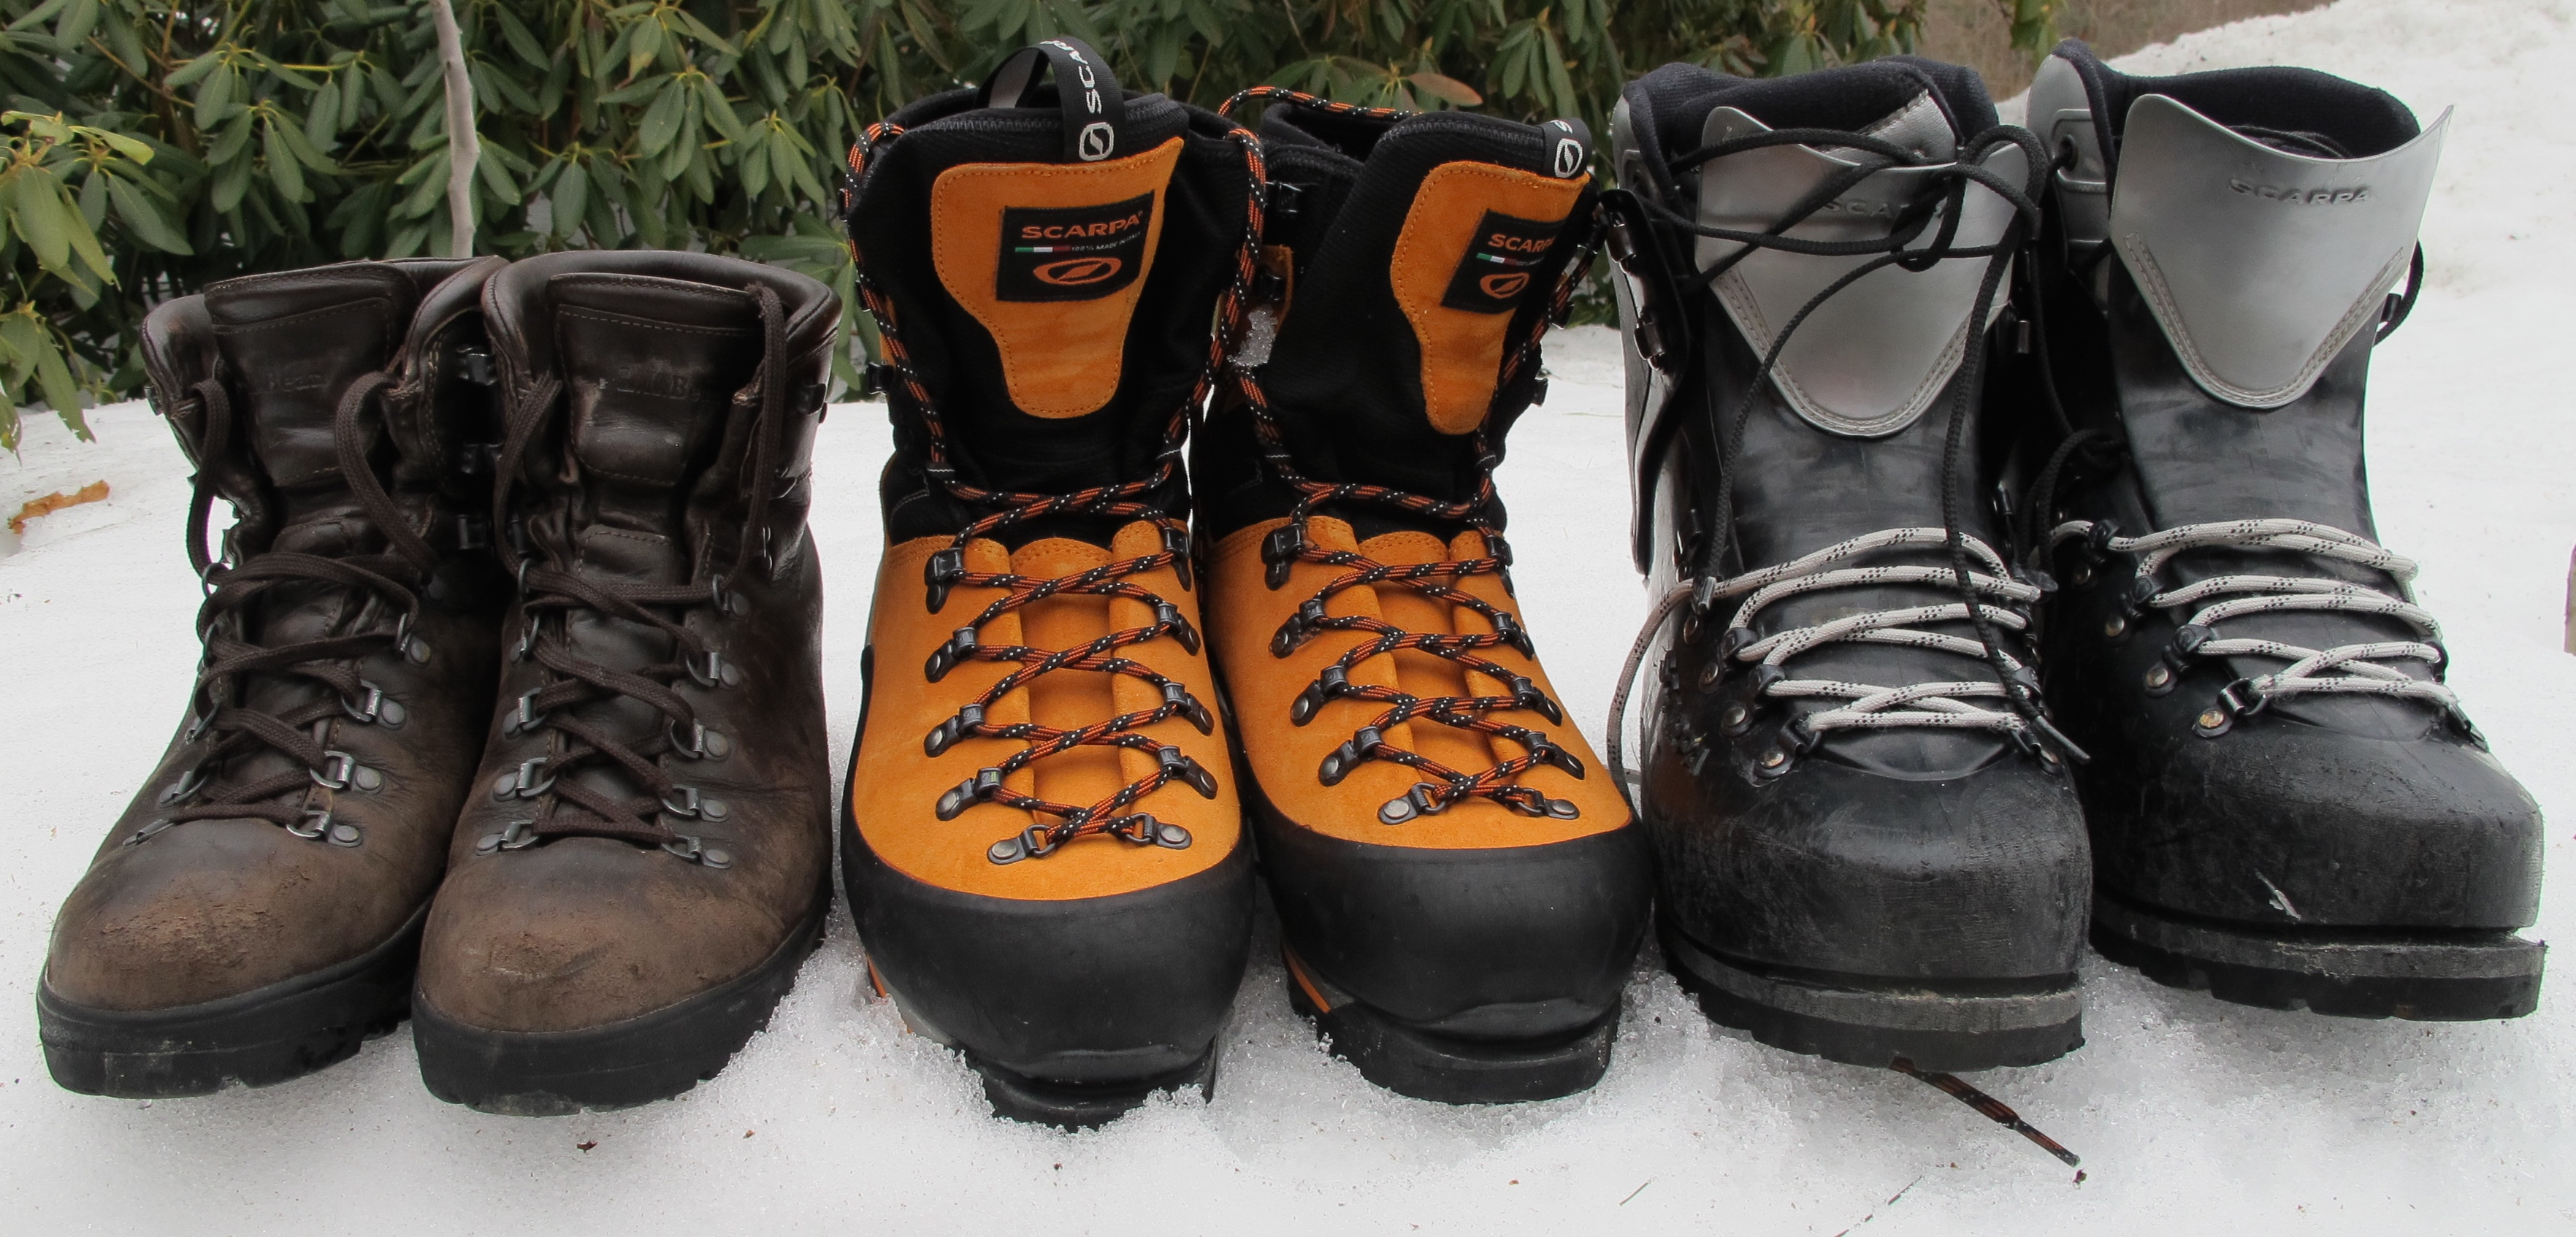 Scarpa Mont Blanc Review | New England Outside